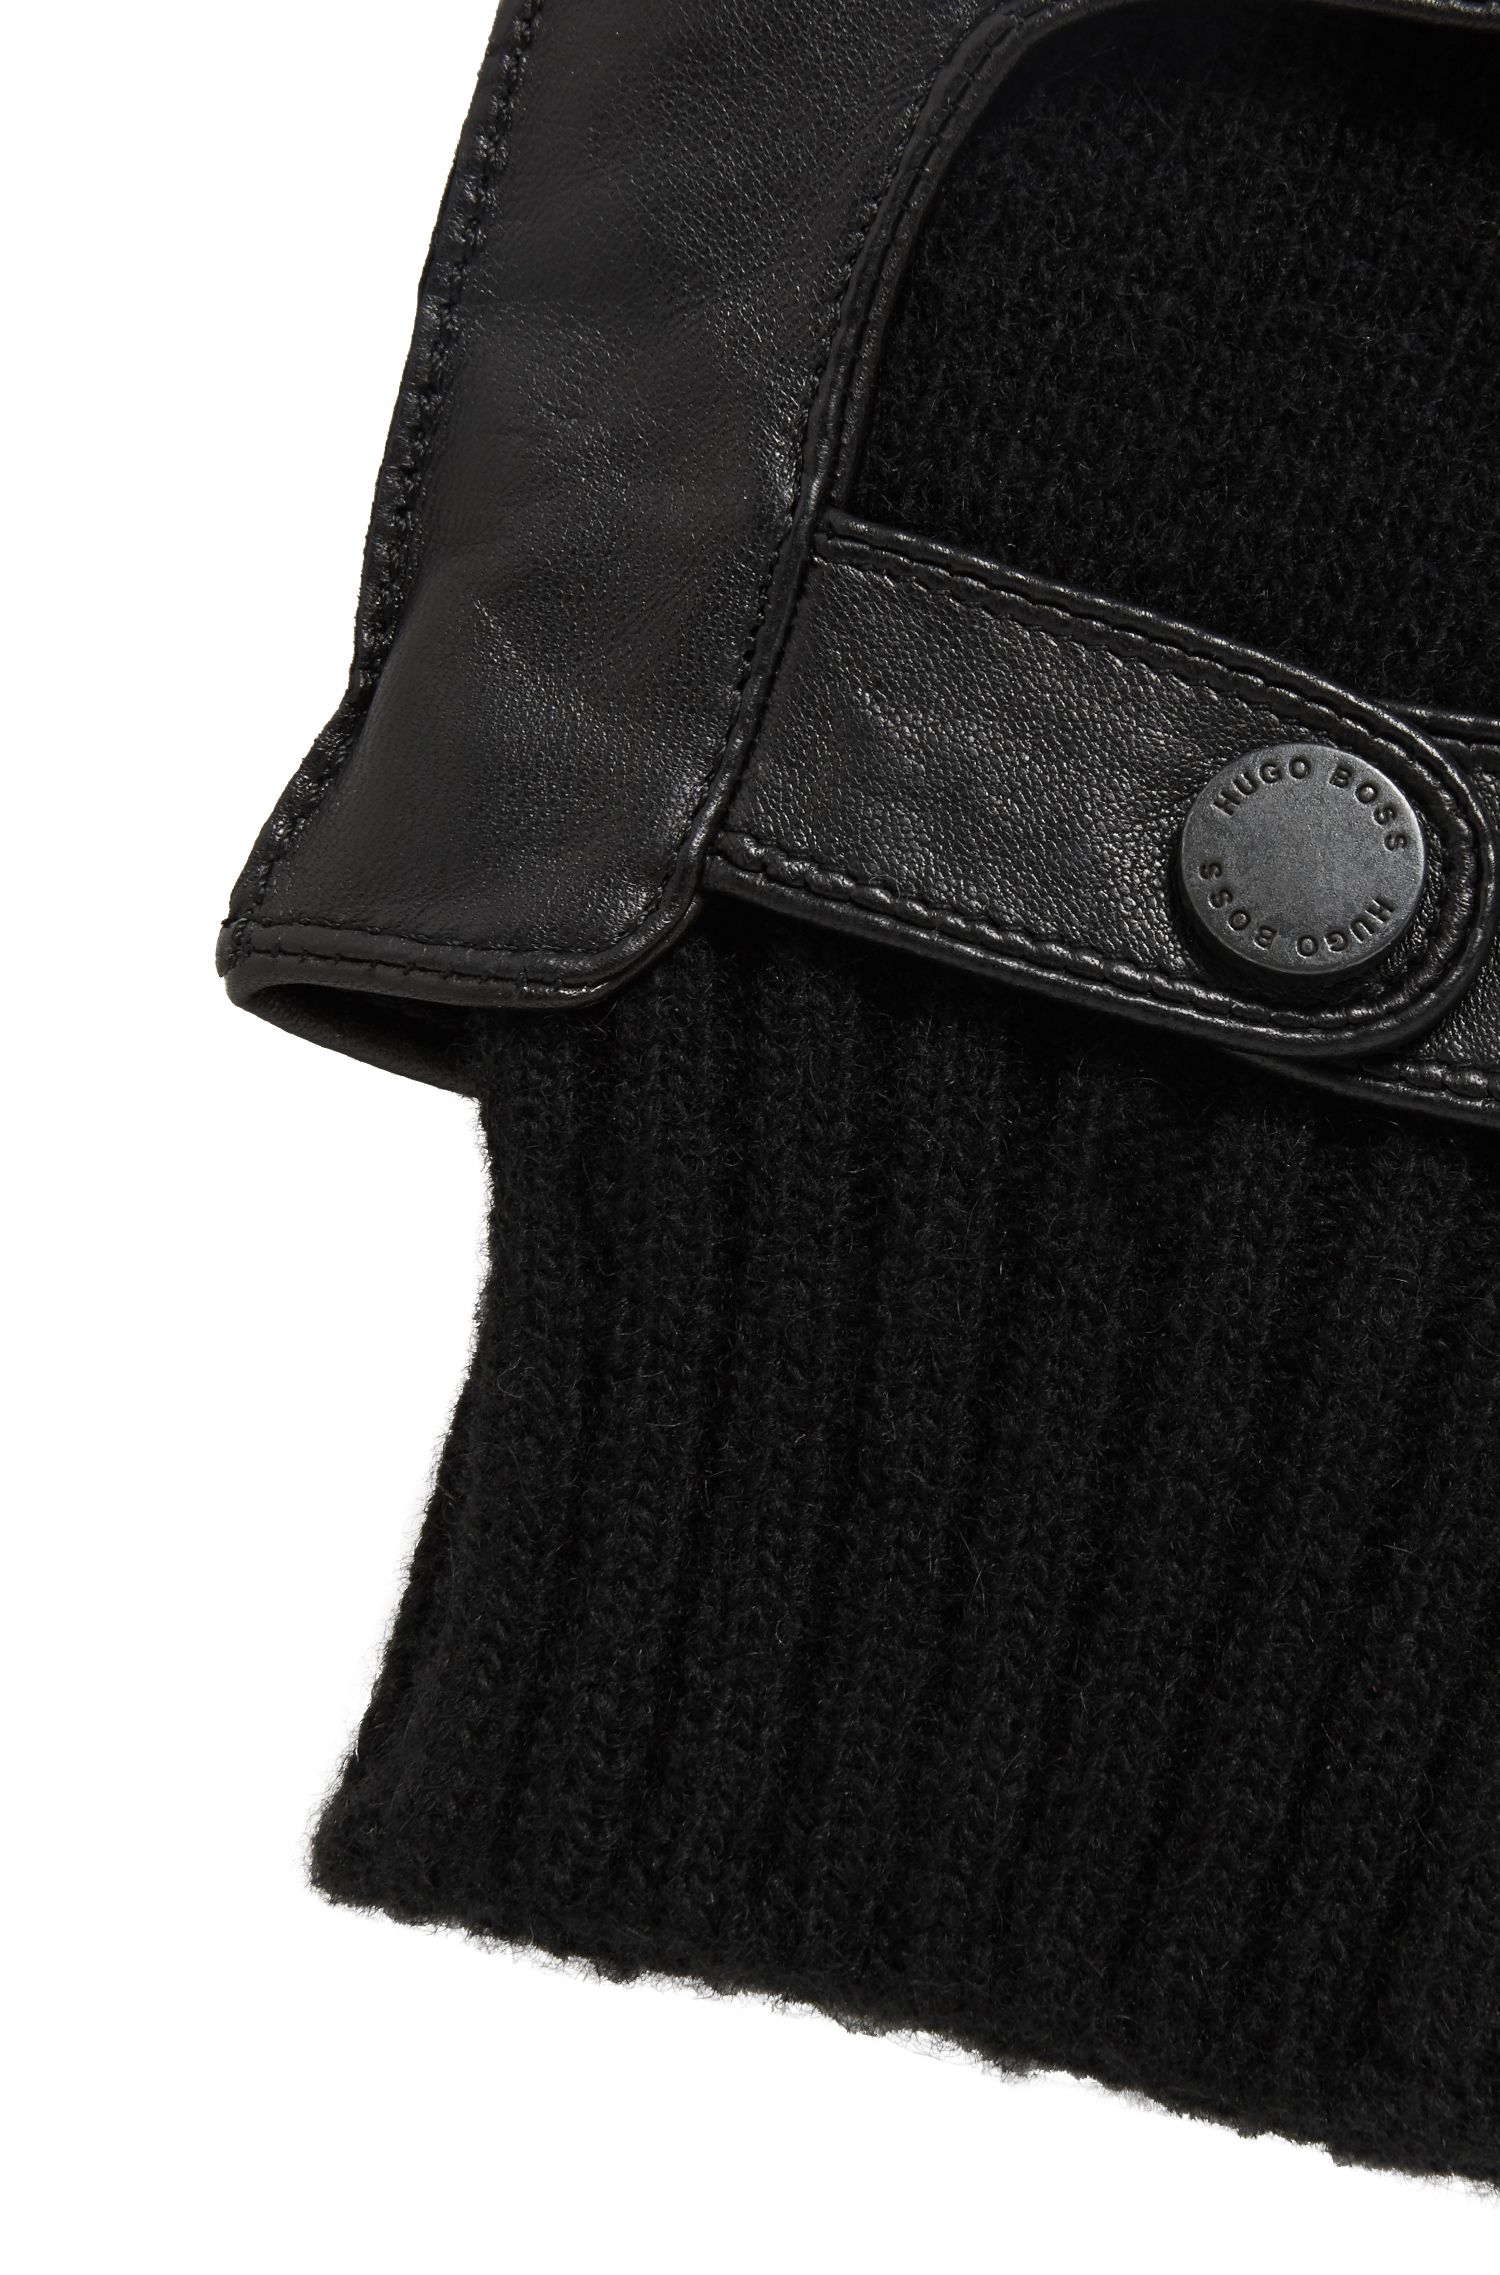 Nappa Leather & Wool Blend Knit Tech Touch Glove | T-Herkan TT